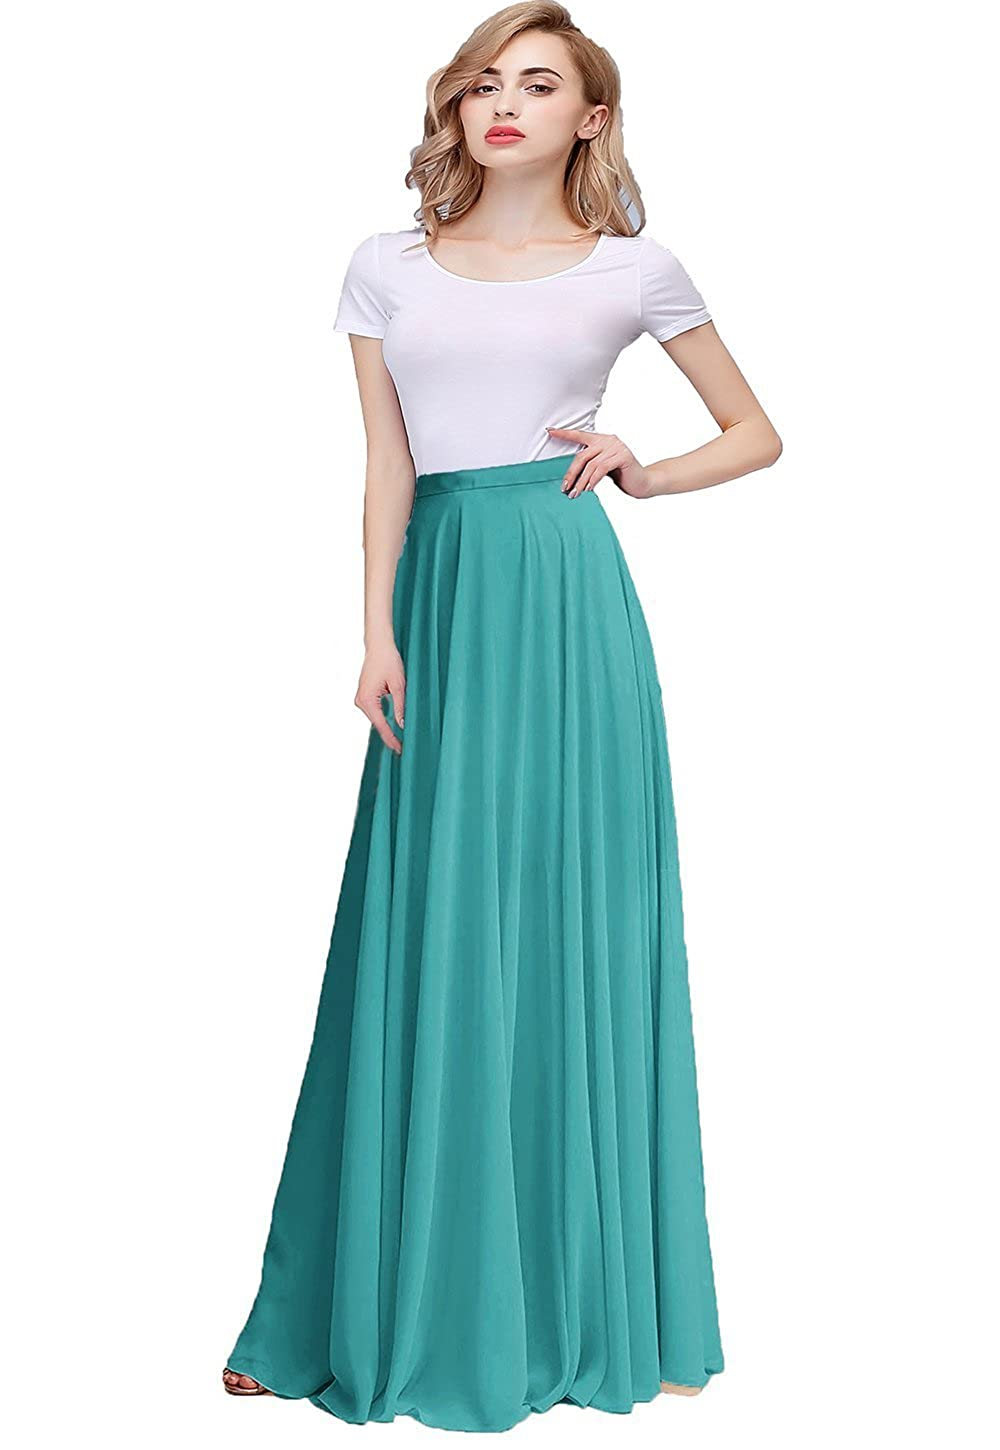 ab122b64de Size:Please choose the size from our size chart, you can find it on the  left pic. column. Our skirt is stretched waistline, the waist size is  S:25-27, ...